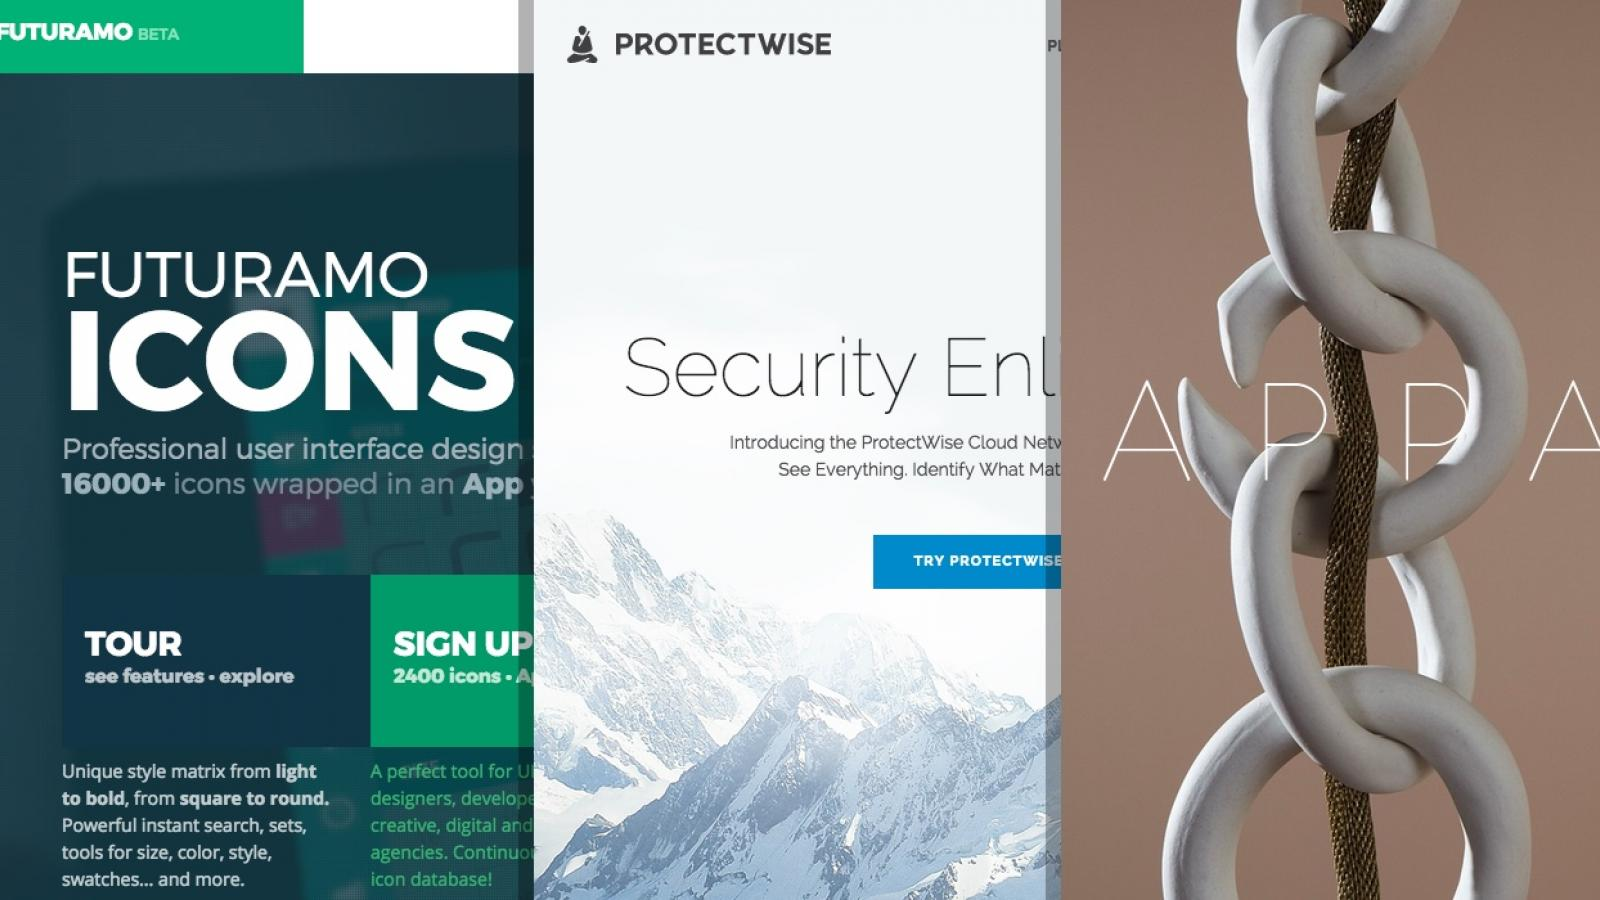 Sites of the Week: Apparatus, One World, Organizze and more